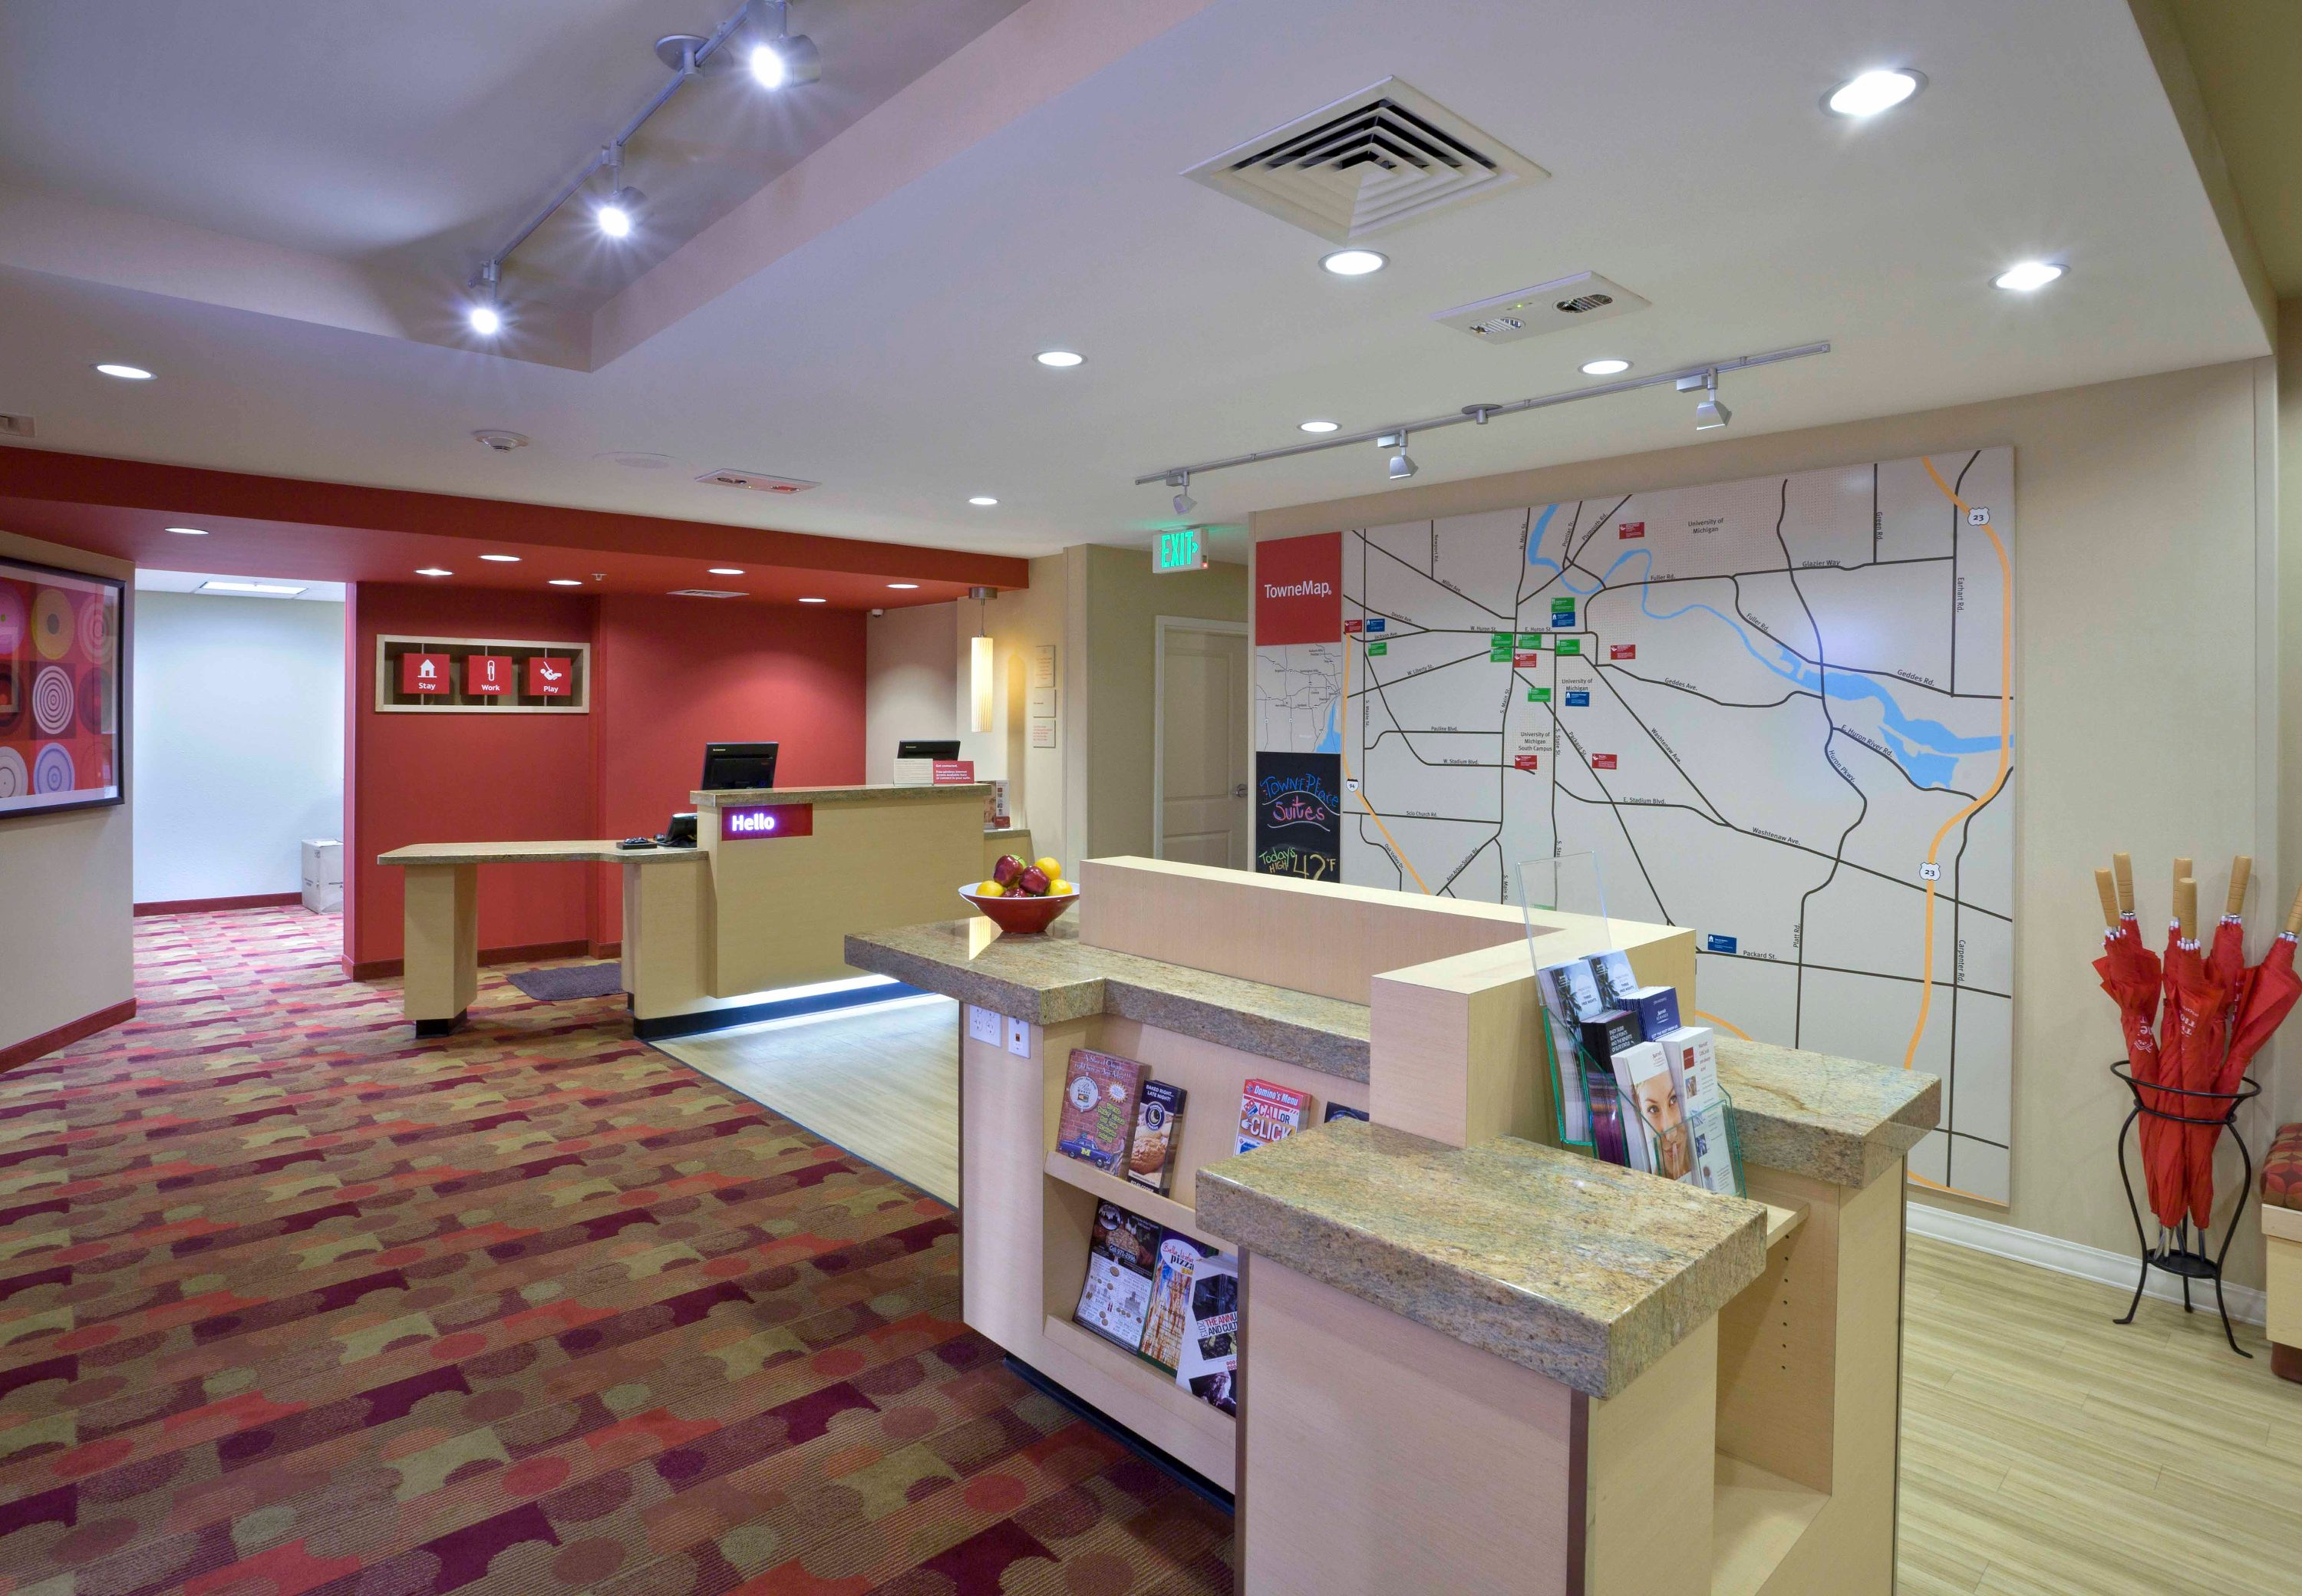 TownePlace Suites by Marriott Ann Arbor image 5